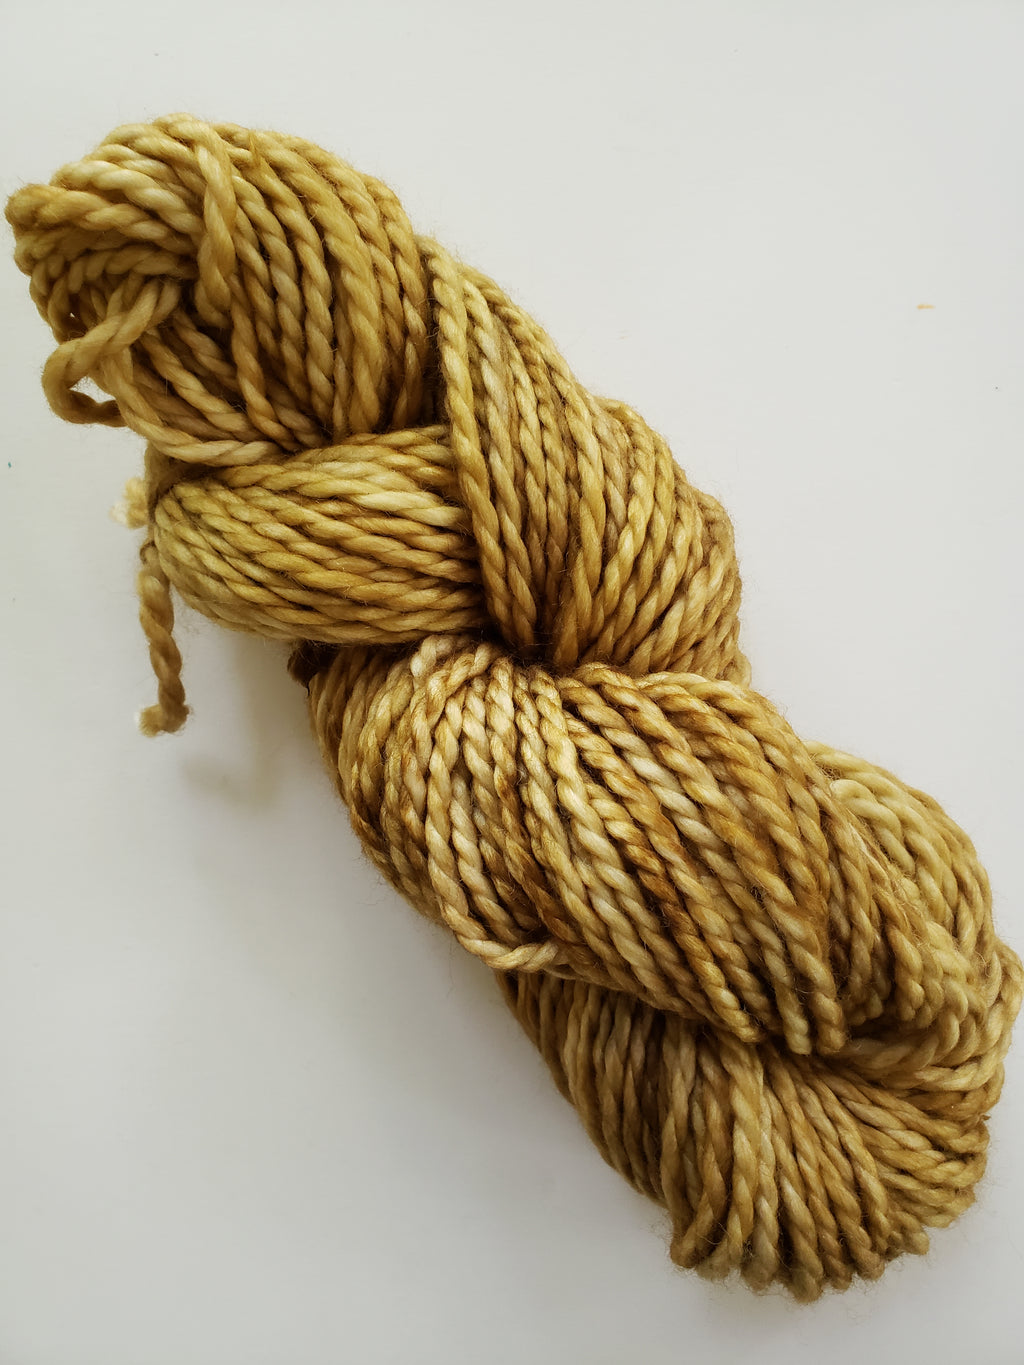 HAY BALE - BIG TWISTY 2 PLY -  Hand Dyed Shades of Yellow and Browns Chunky Yarn for Rug Hooking - RSS225